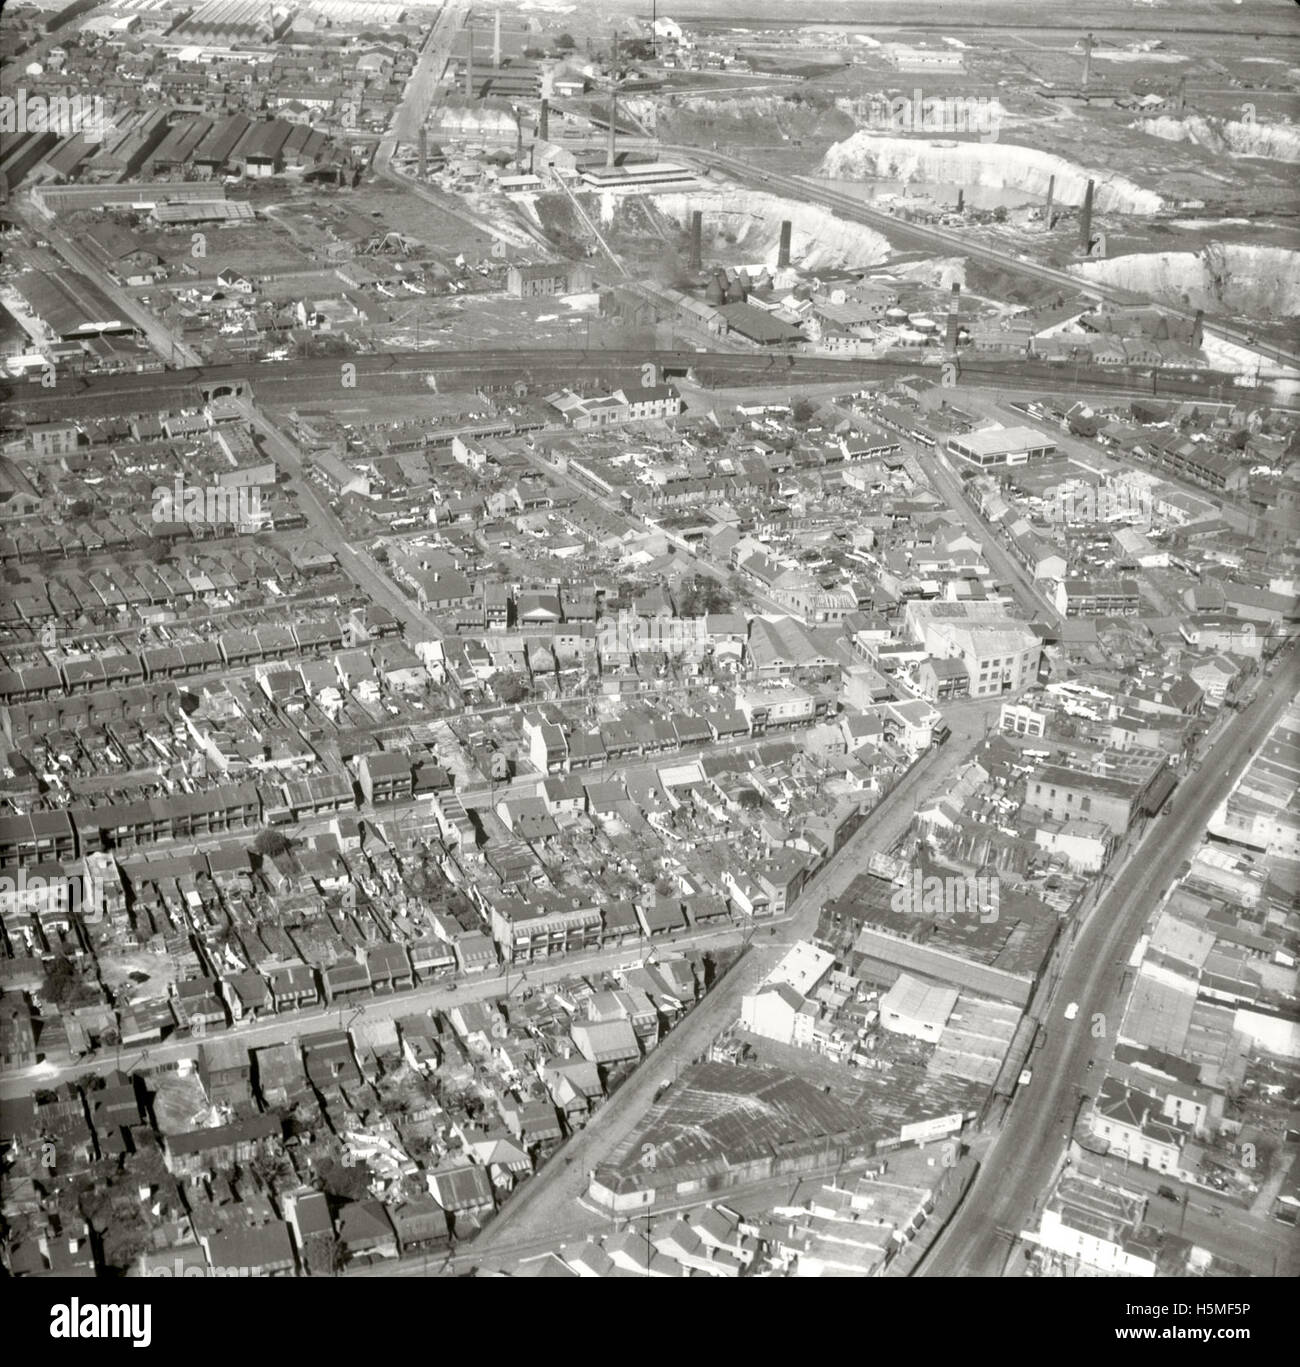 Erskineville & Environs (A) - 15521 -25 Aug 1937 - Stock Image